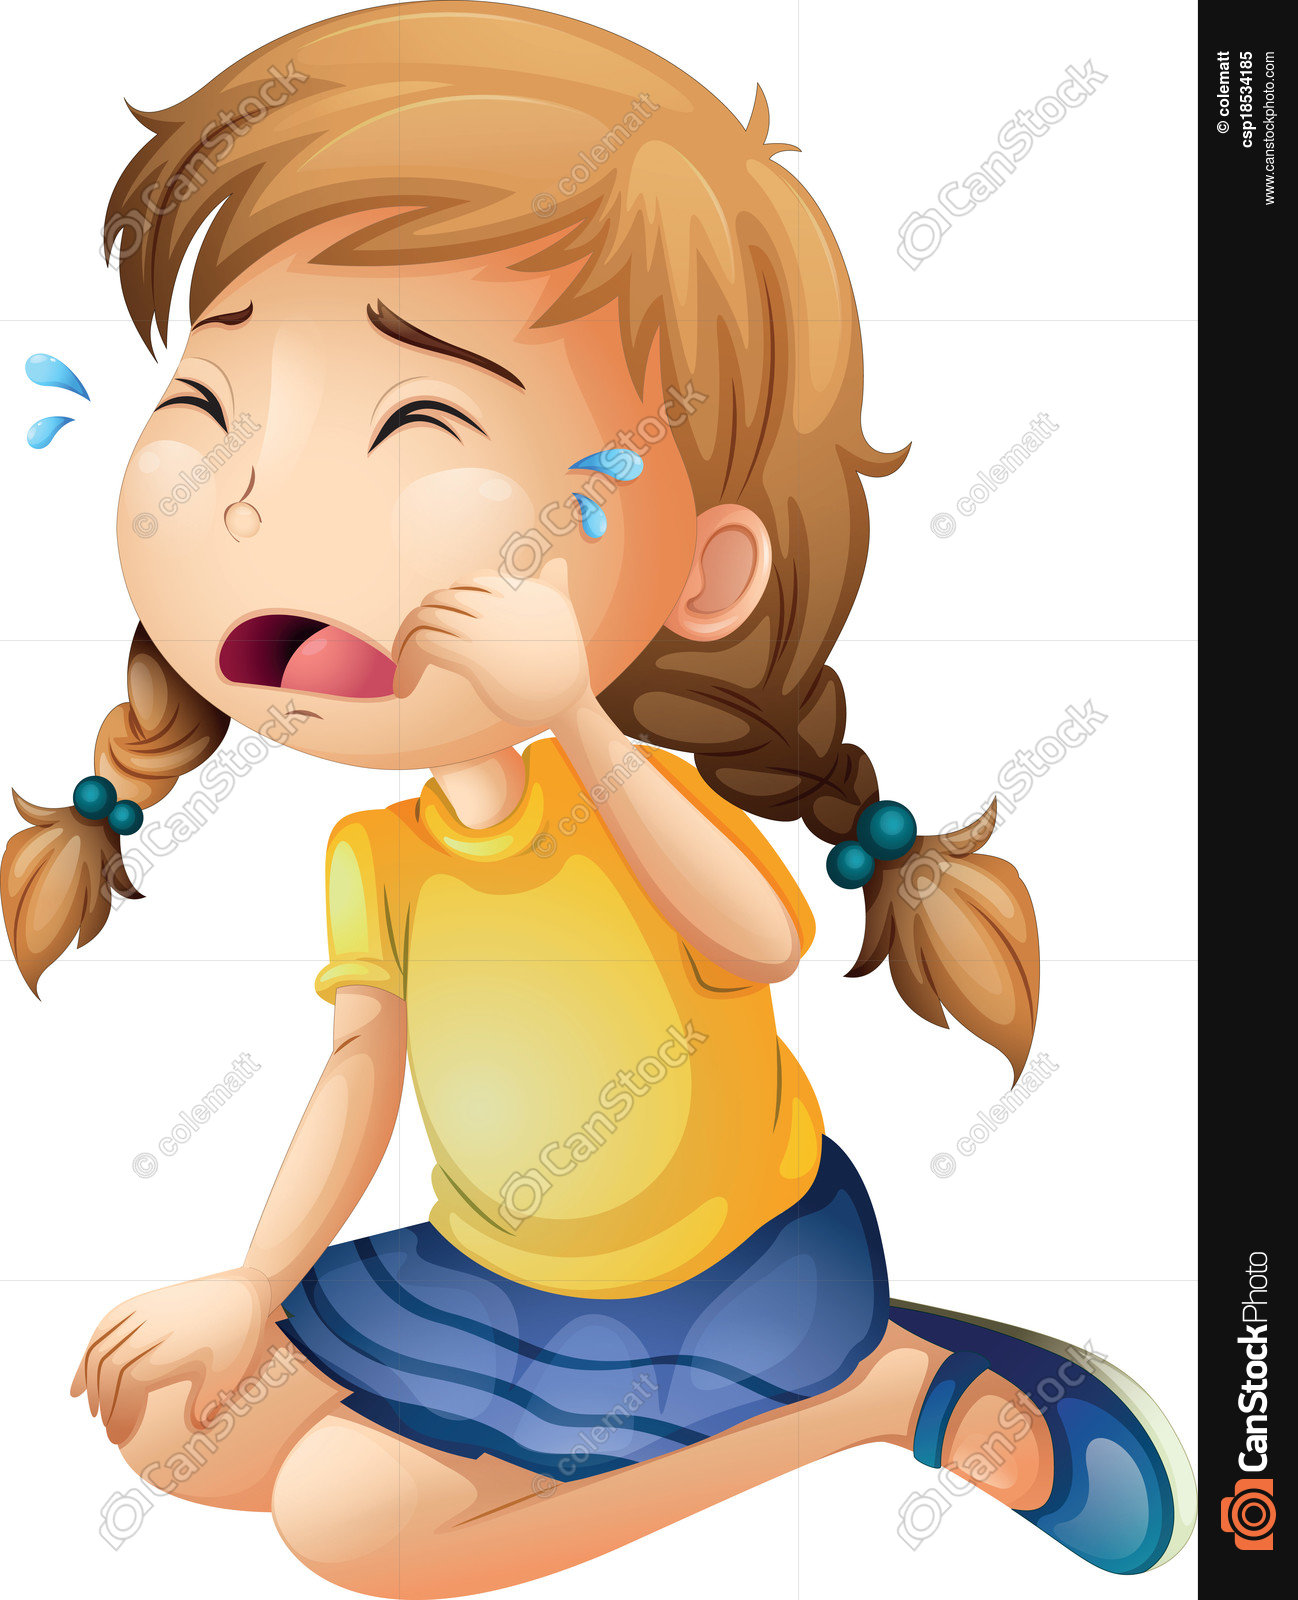 Girl crying clipart 6 » Clipart Station.